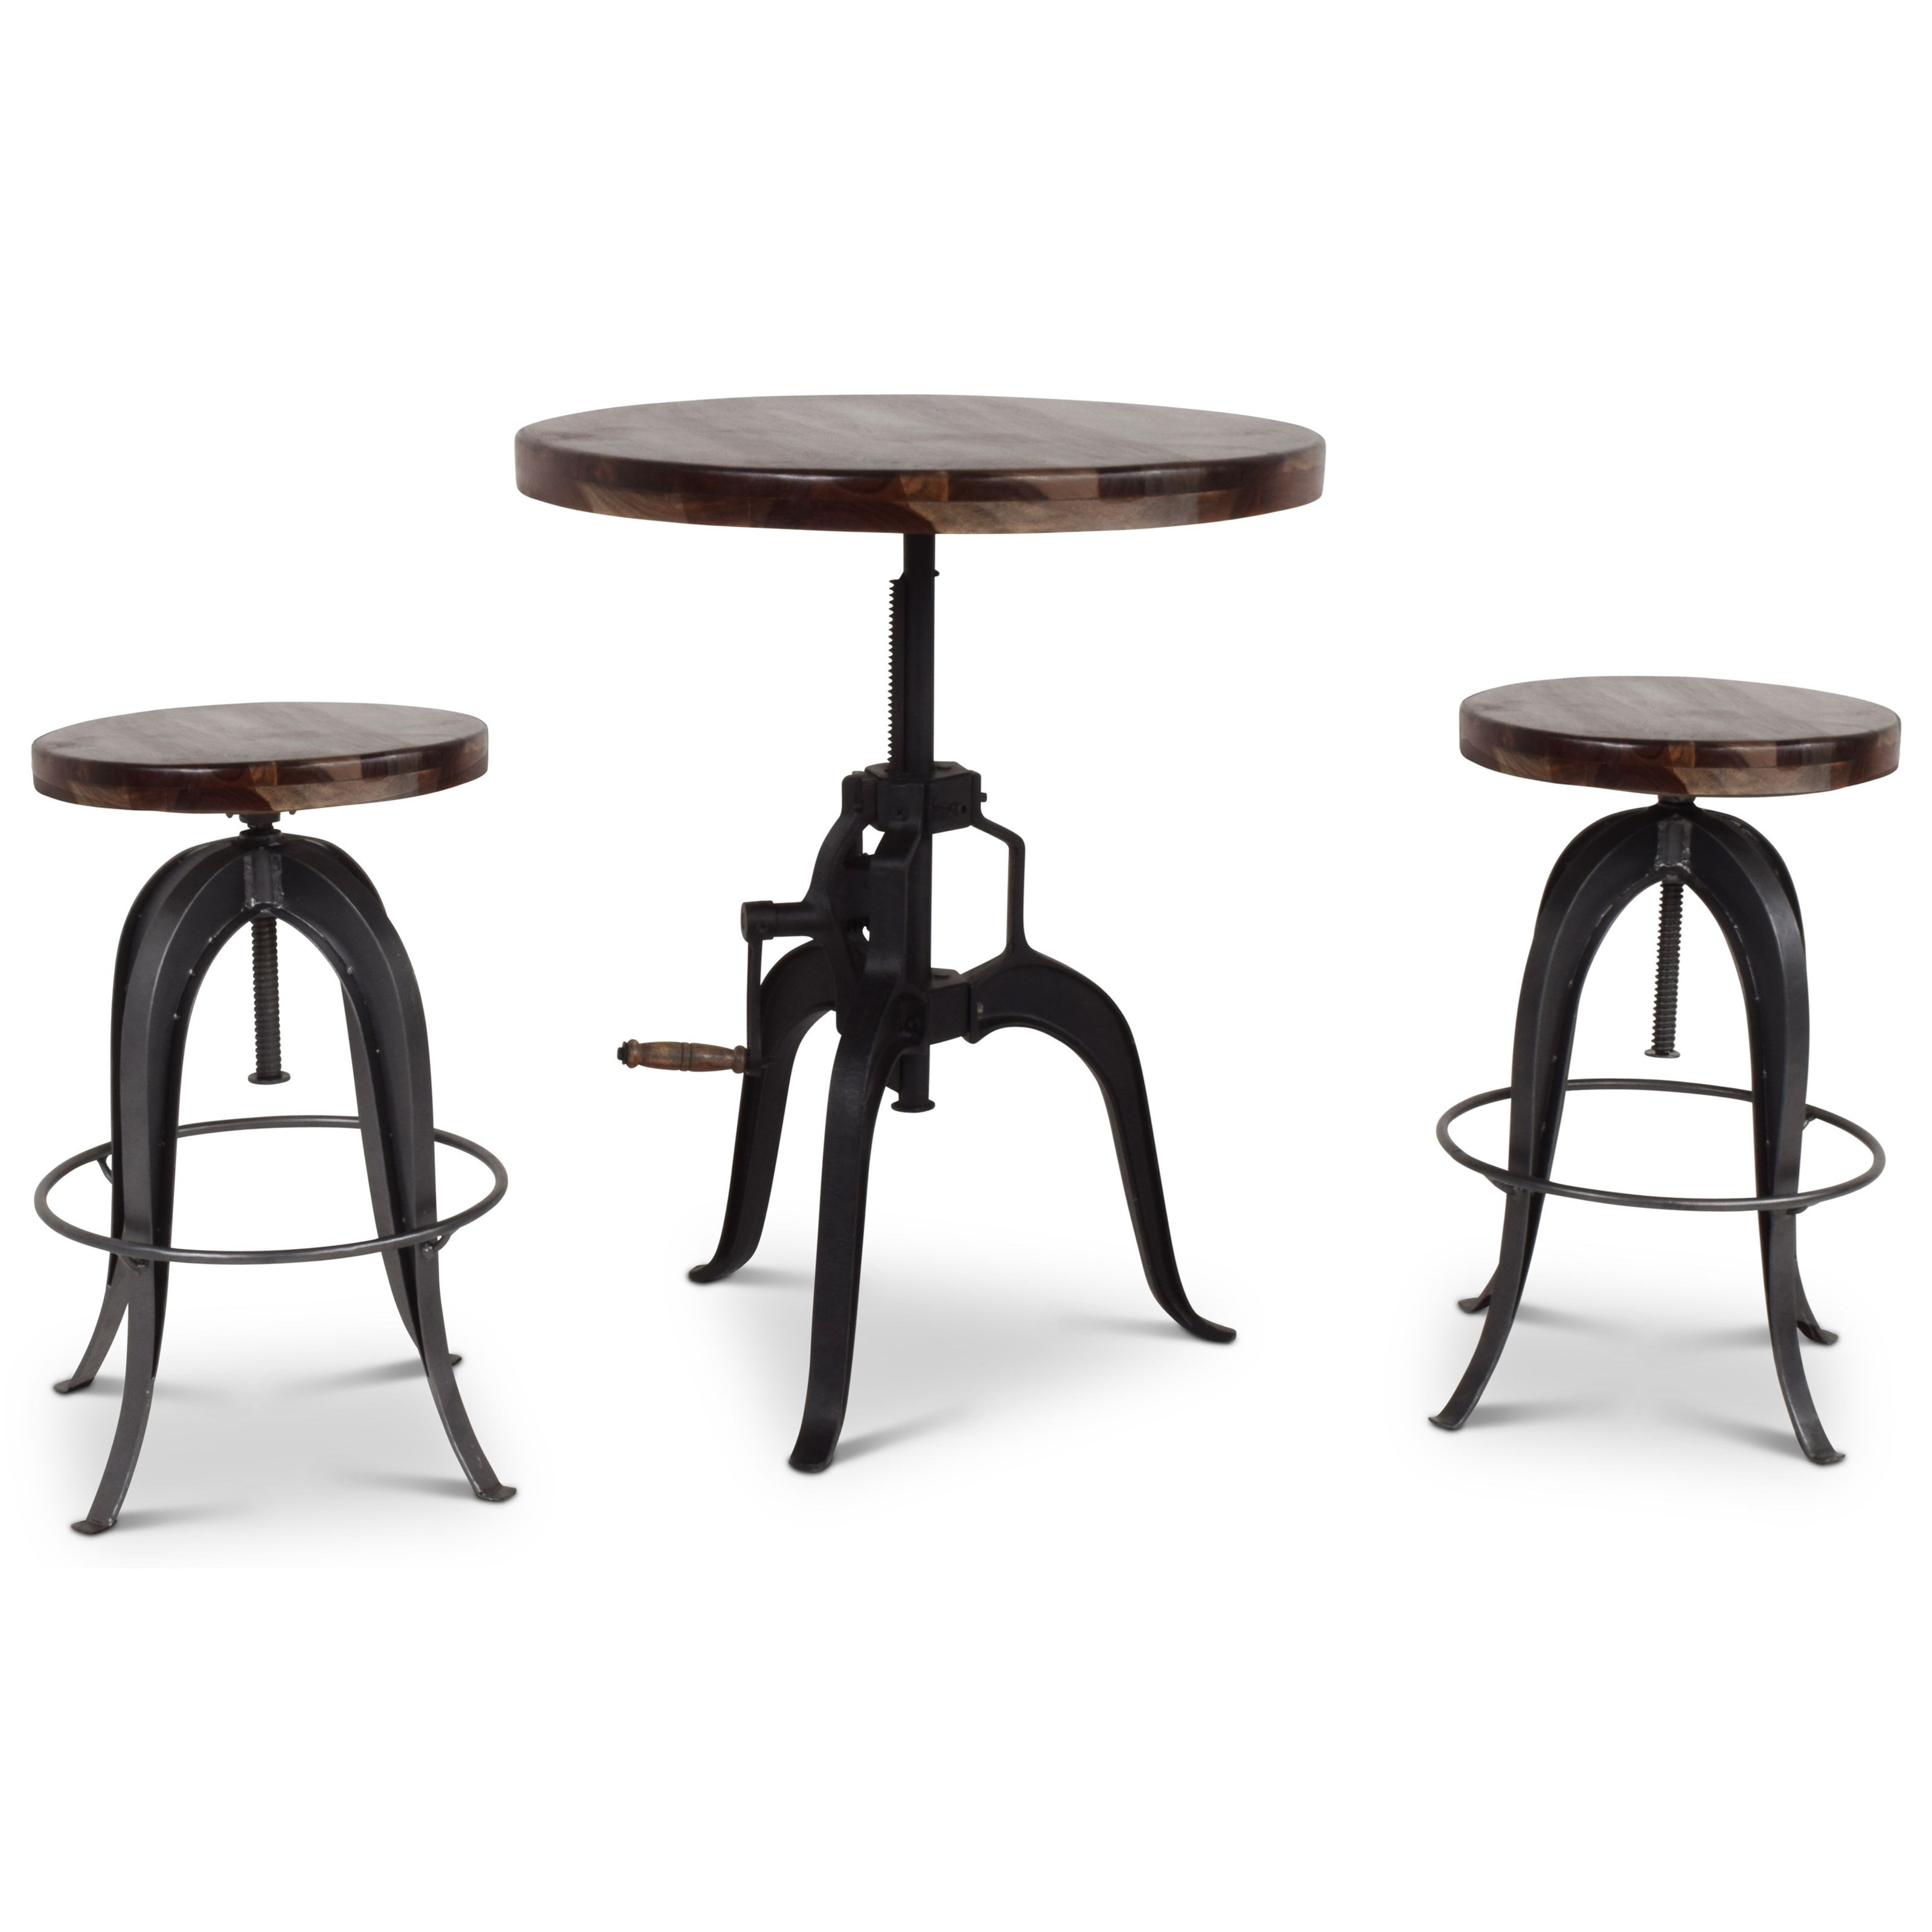 Sparrow 3 Pc Bar Table and Stool Set by Steve Silver at Northeast Factory Direct